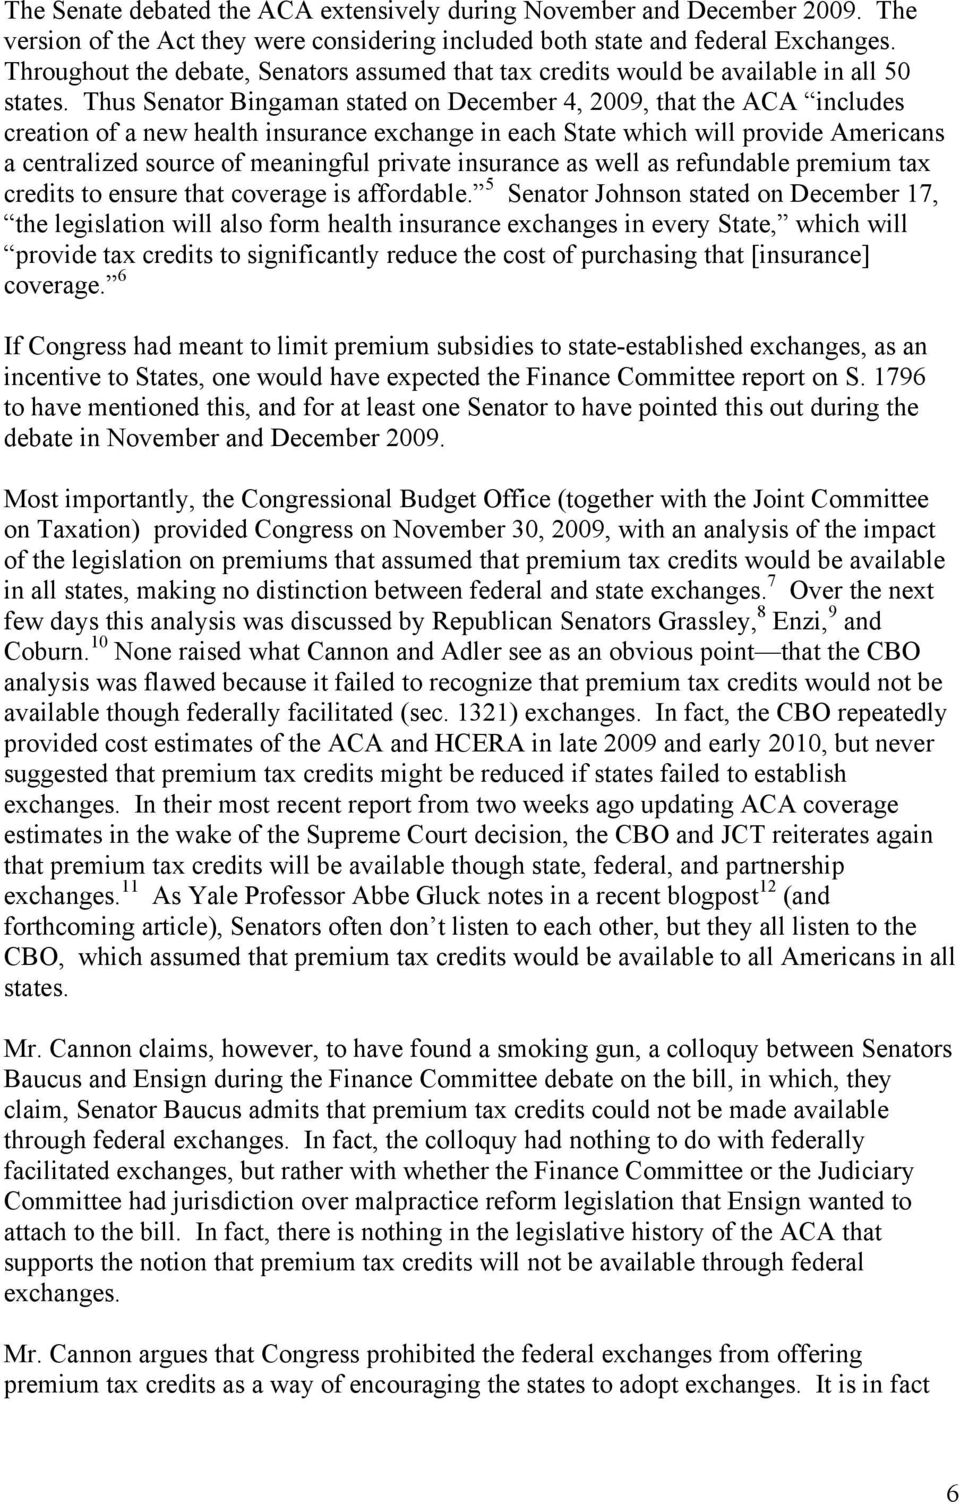 Thus Senator Bingaman stated on December 4, 2009, that the ACA includes creation of a new health insurance exchange in each State which will provide Americans a centralized source of meaningful